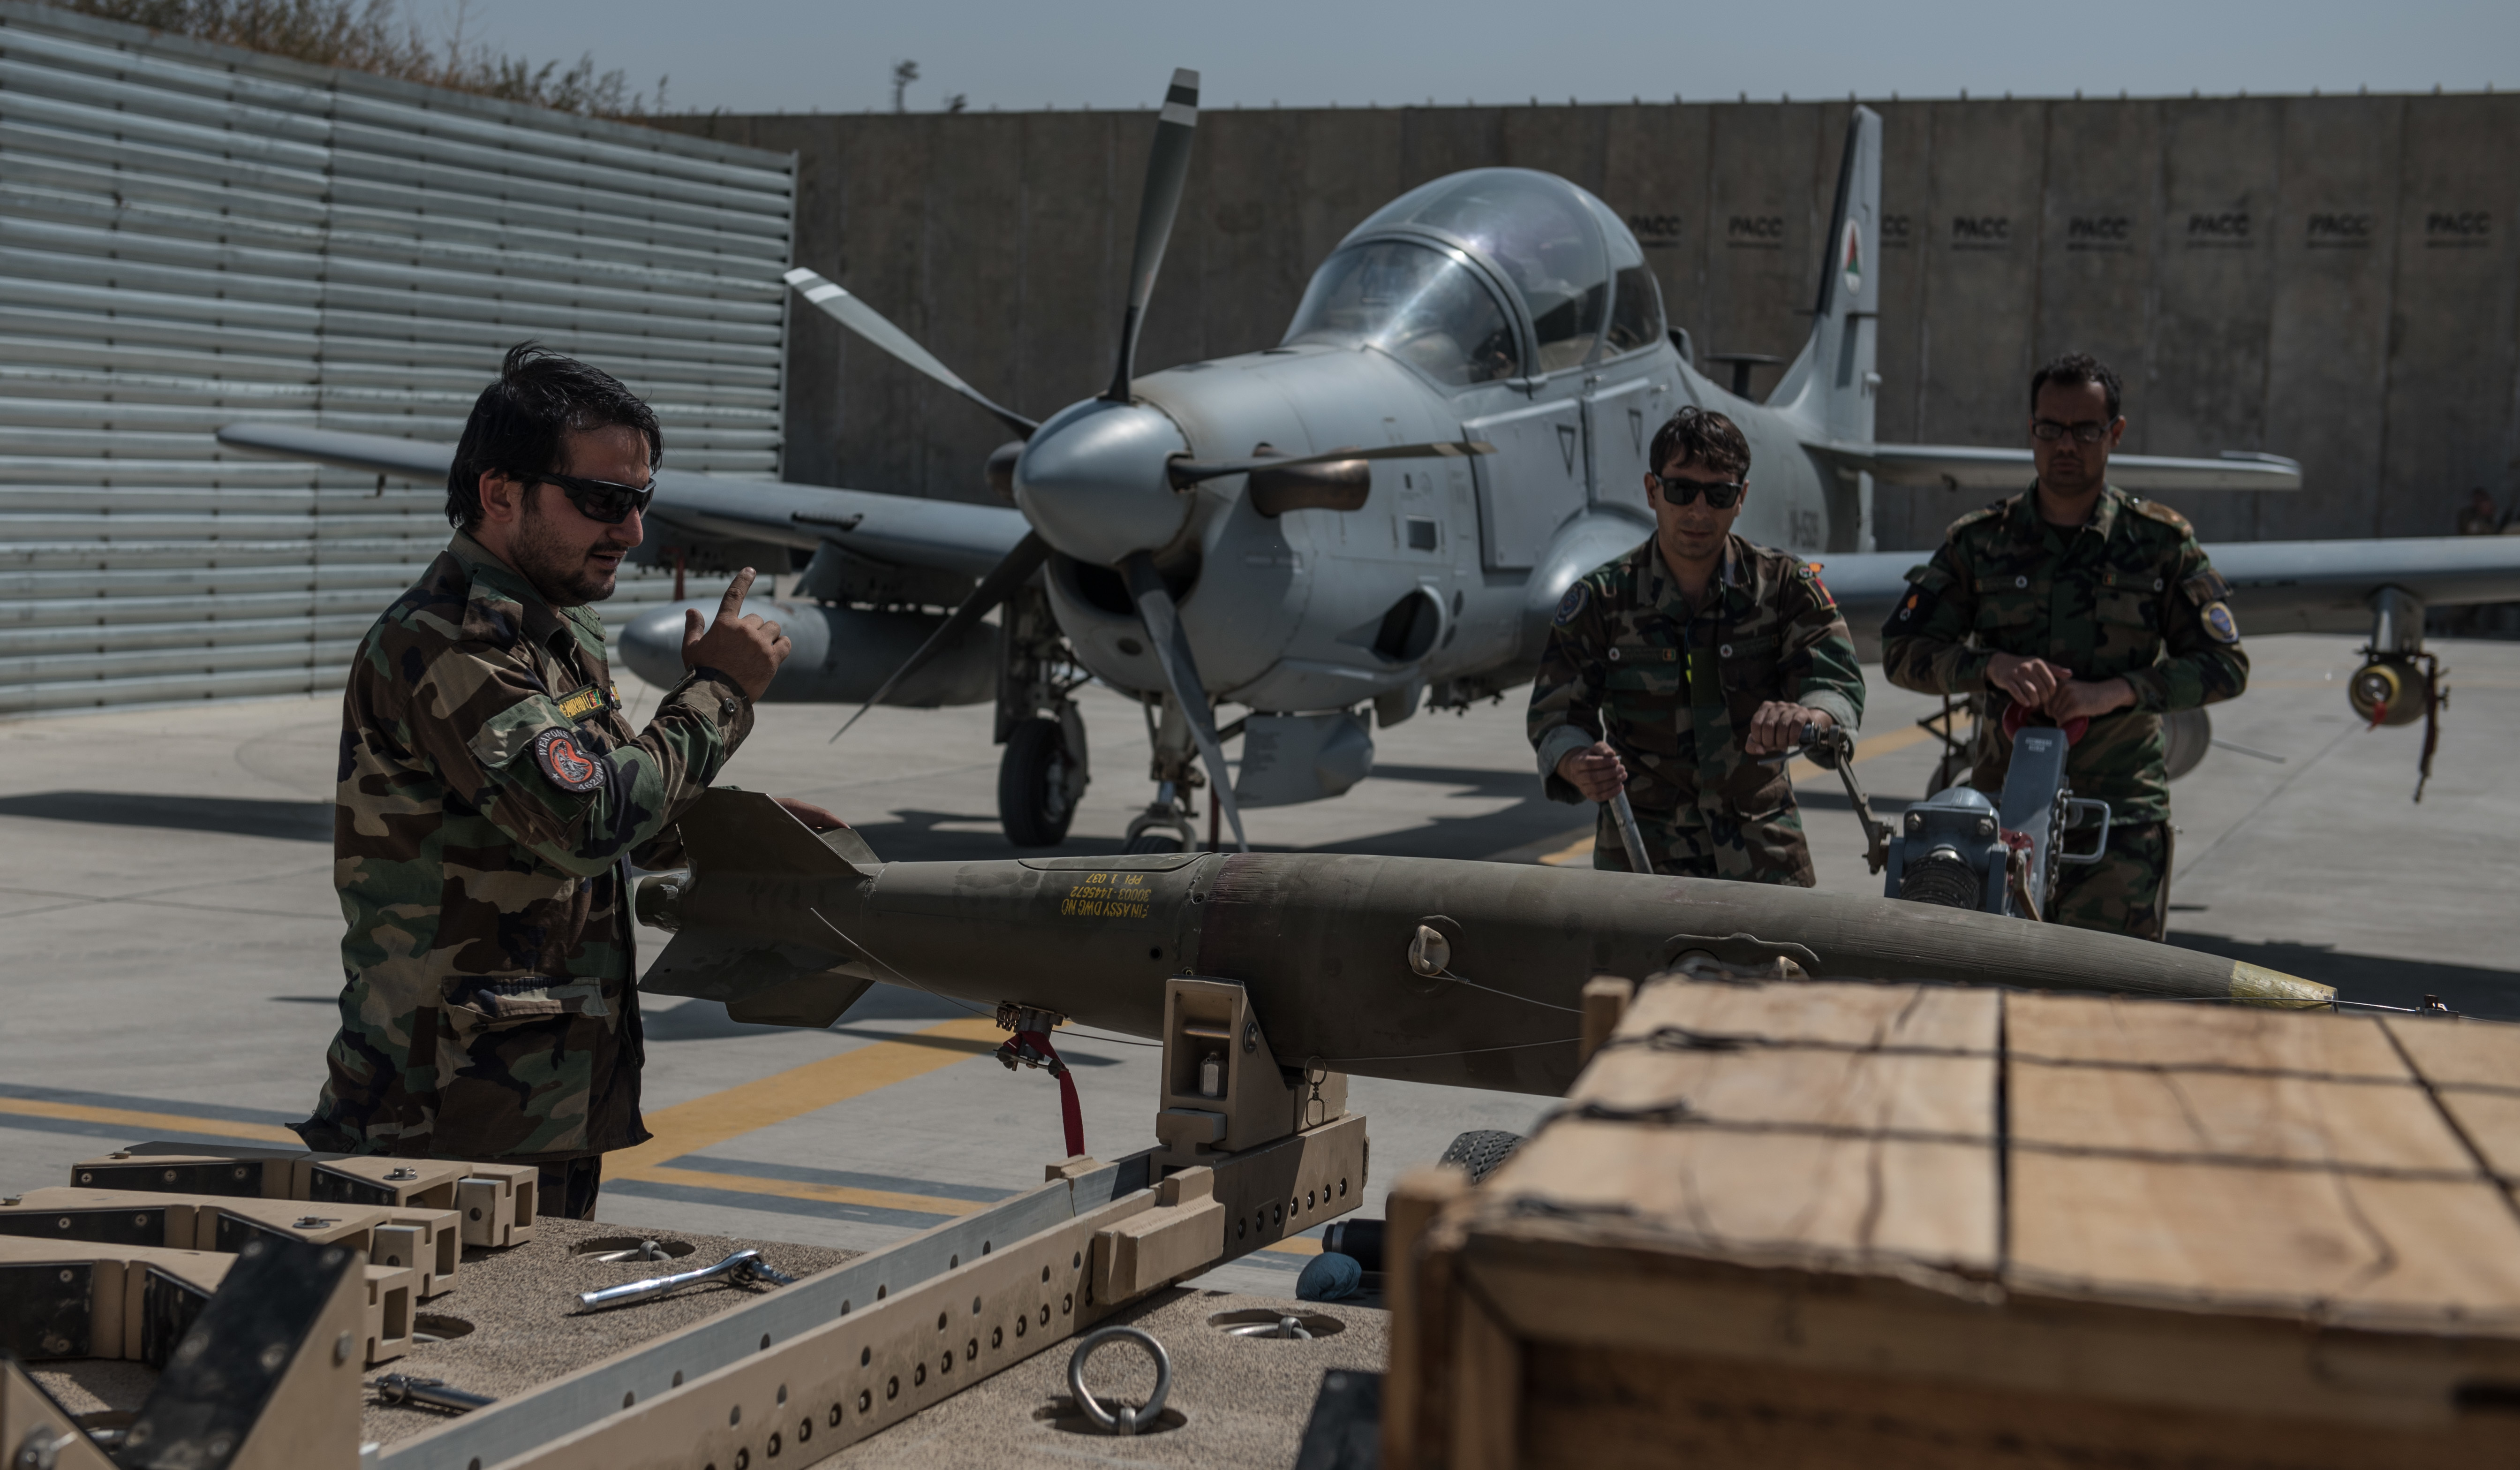 Afghan munitions Airmen move an Mark-81 bomb toward an A-29 Super Tucano Sept. 12, 2017, in Kabul, Afghanistan. Munitions crews regularly train loading procedures in order to hone and practice their skills, while also supporting active combat operations against anti-government forces throughout Afghanistan. (U.S. Air Force photo by Staff Sgt. Alexander W. Riedel)